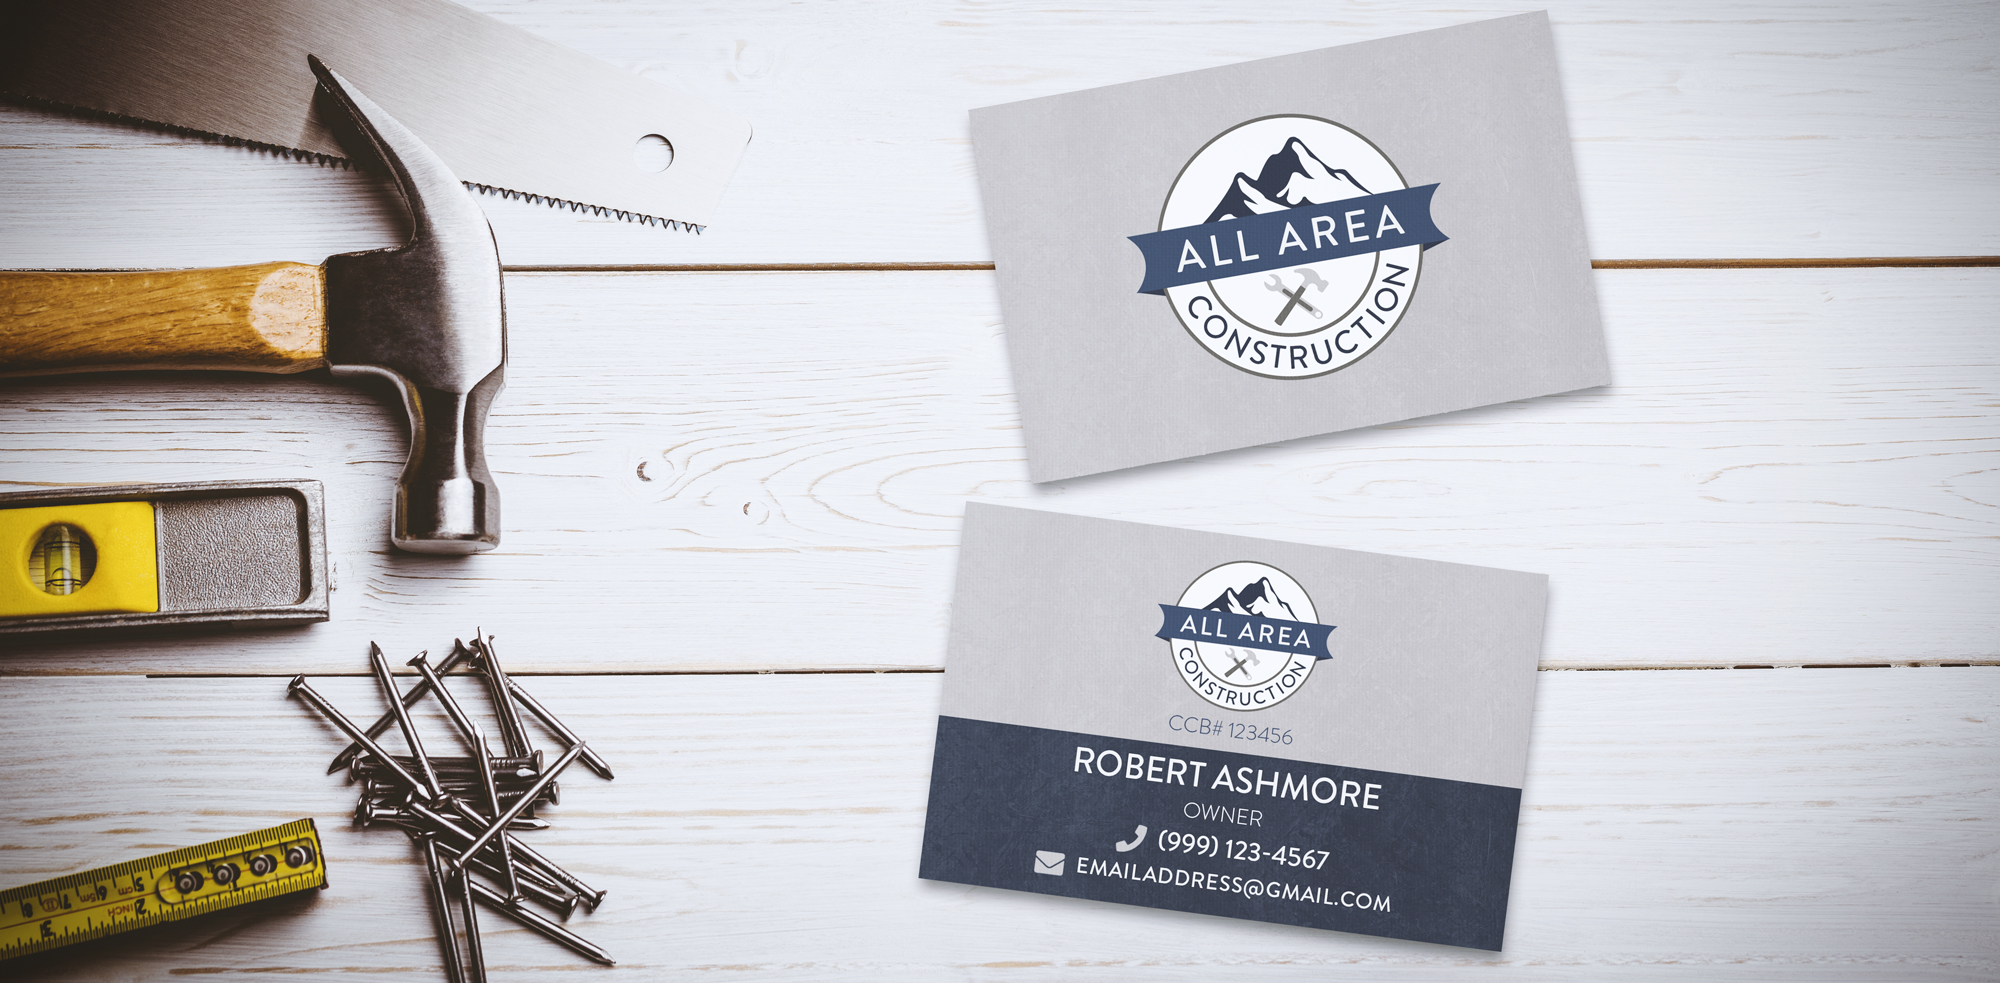 All Area Construction business cards